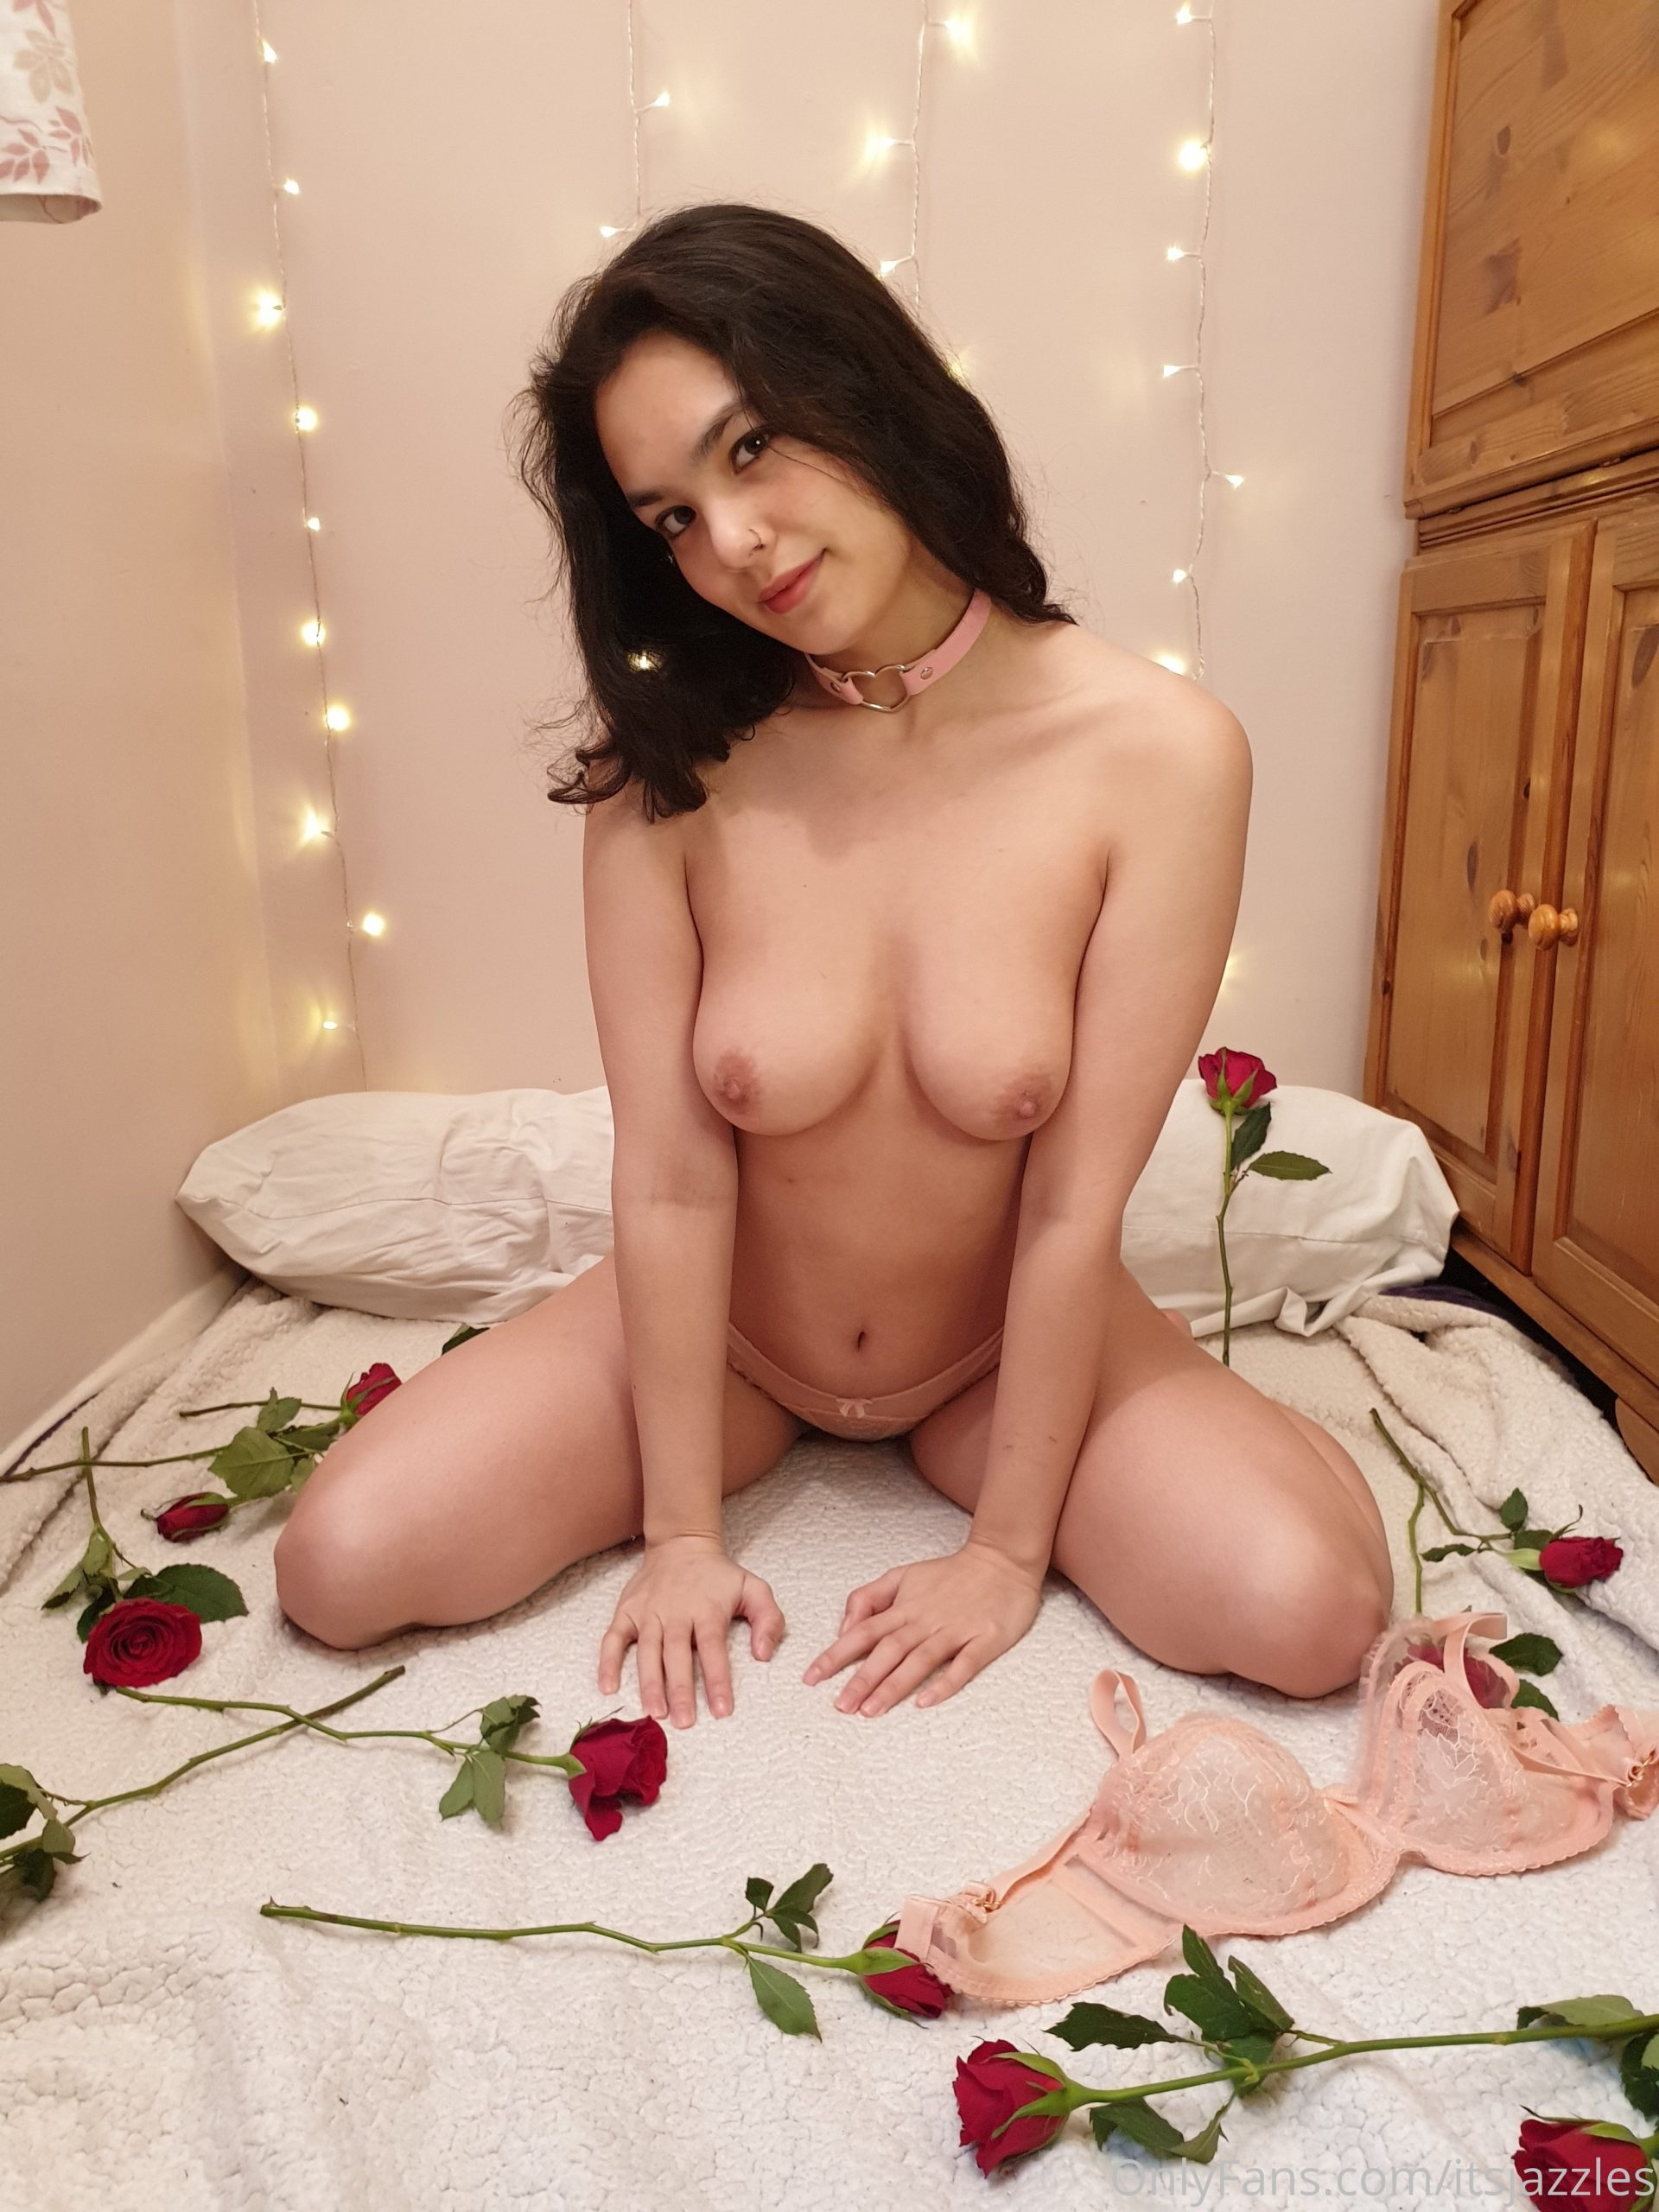 Itsjazzles, Onlyfans Nudes Leaked 0010